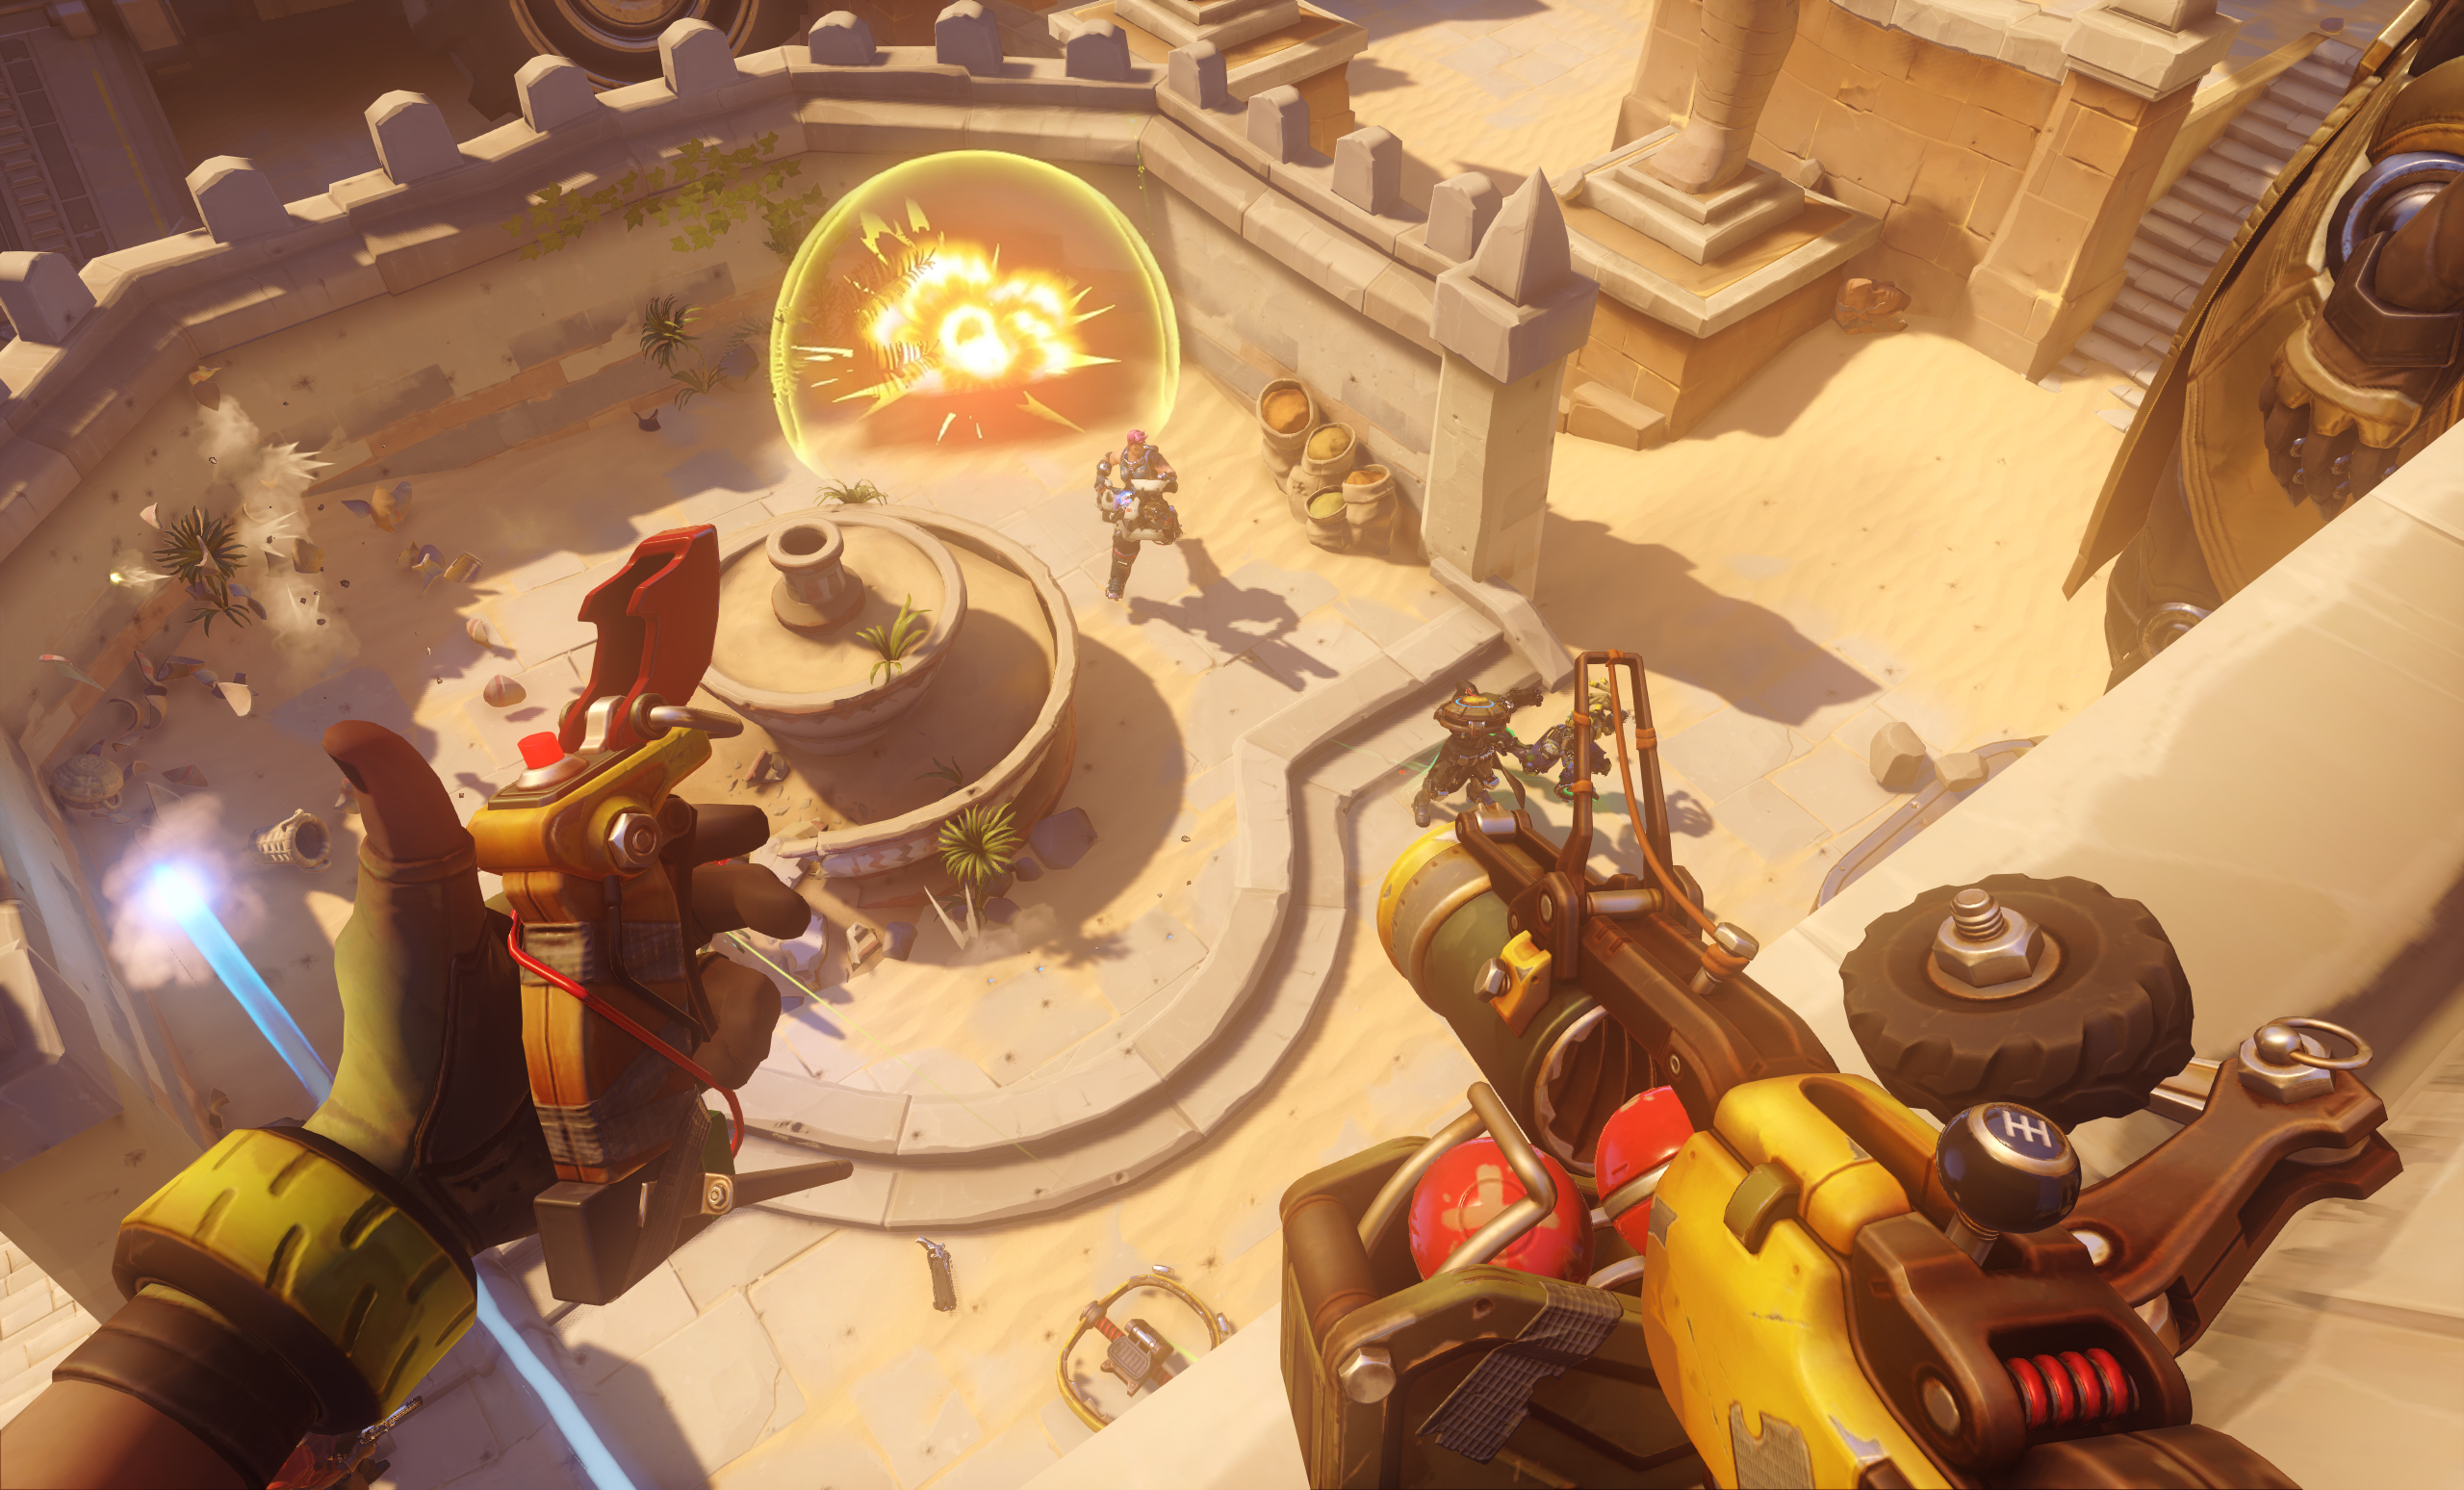 Blizzard's 'Overwatch' shooter enters public beta on October 27th